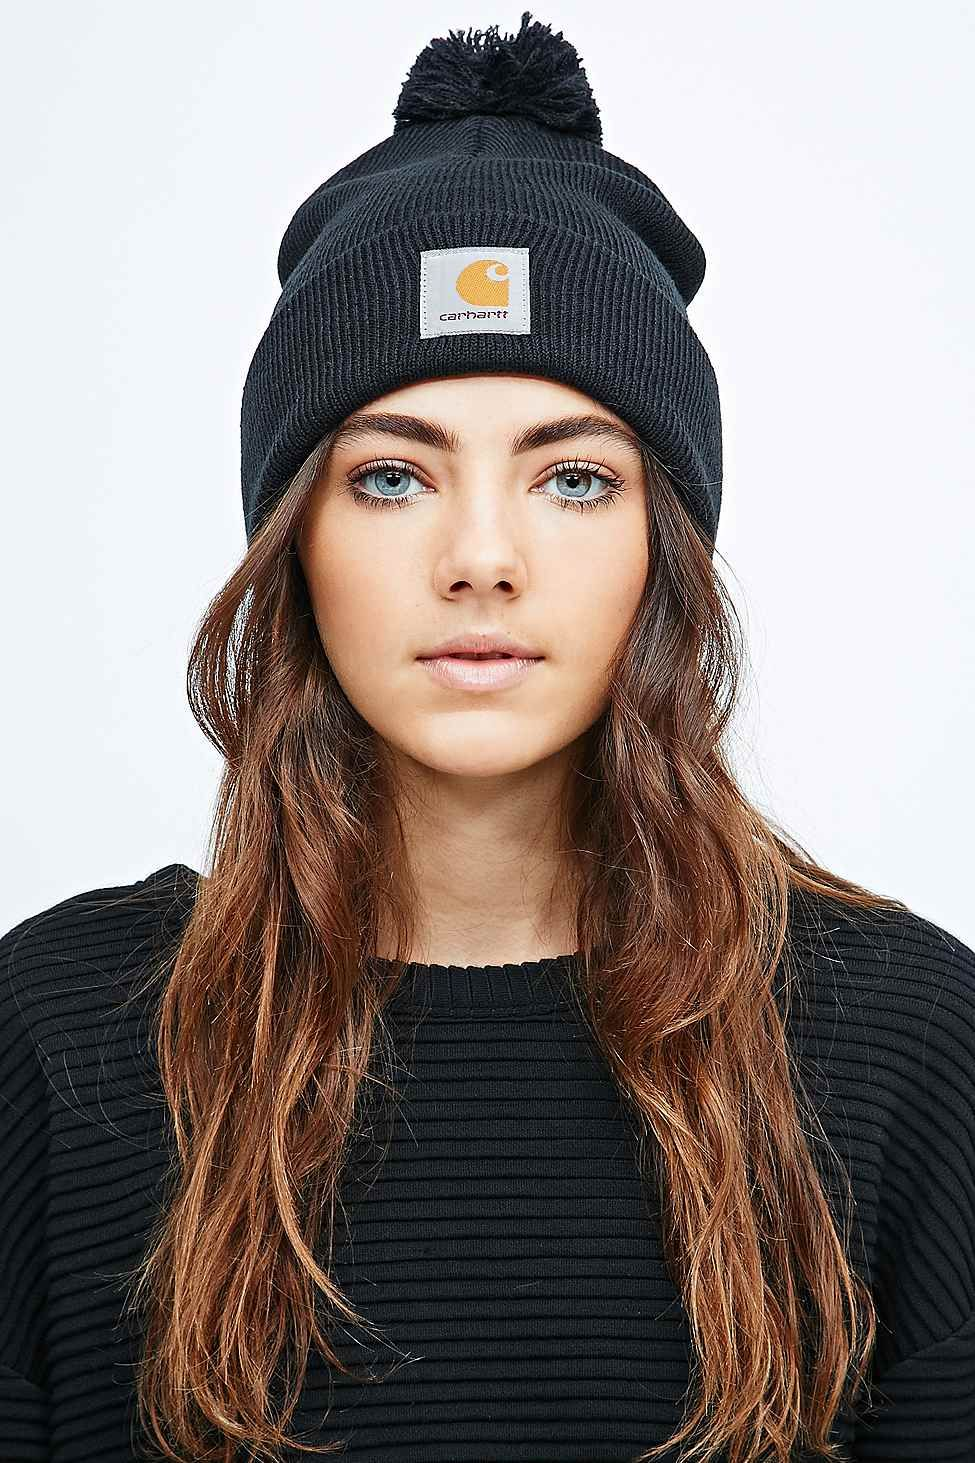 a8b00241330 Carhartt Bobble Watch Hat Beanie in Black - Urban Outfitters